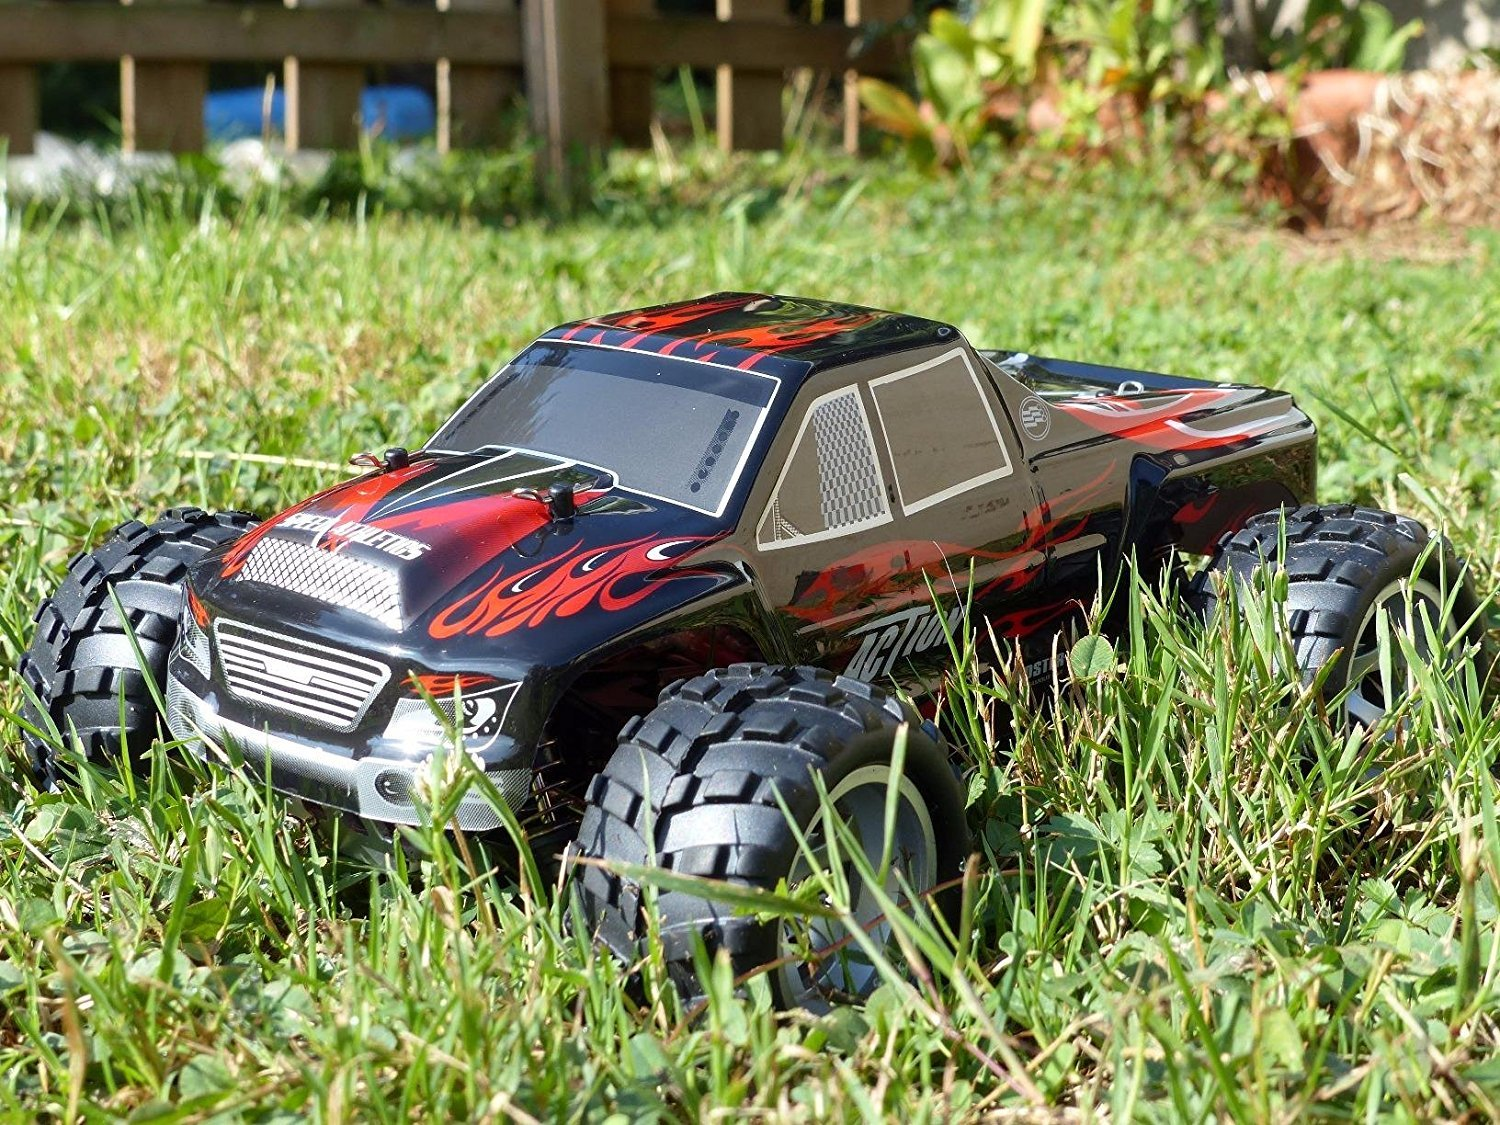 Remote Control Car, Distianert 1/18 Scale 4WD RC Car Electric Racing Car Off Road RC Monster Truck RTR Desert Buggy Vehicle 2.4Ghz 30MPH High Speed with 2 Rechargeable Batteries by Distianert (Image #5)